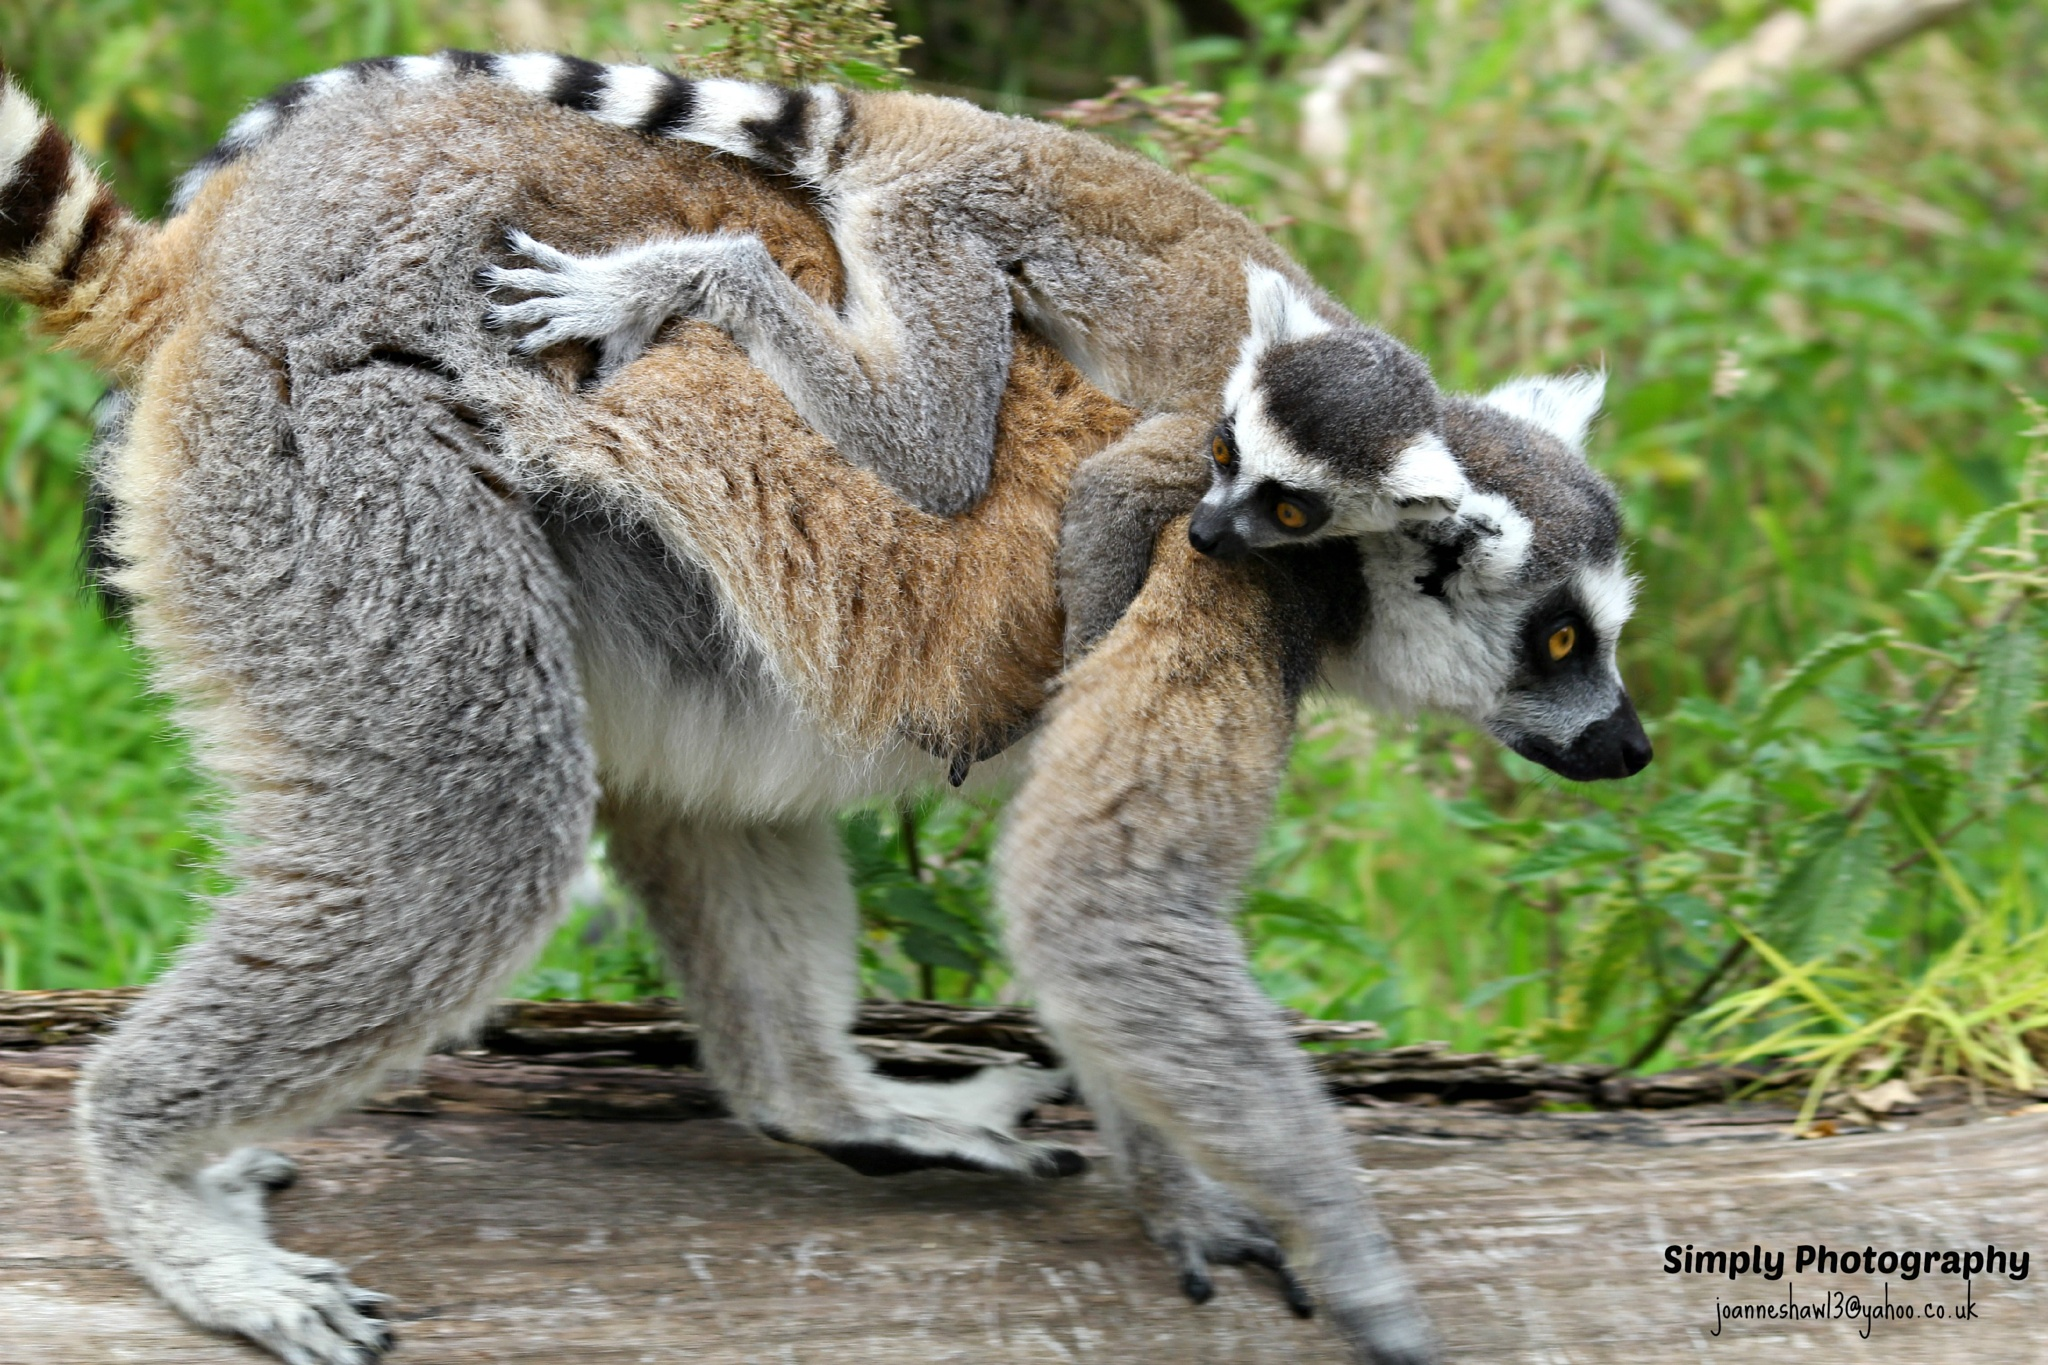 Ring-tailed lemur by Joanne Laws